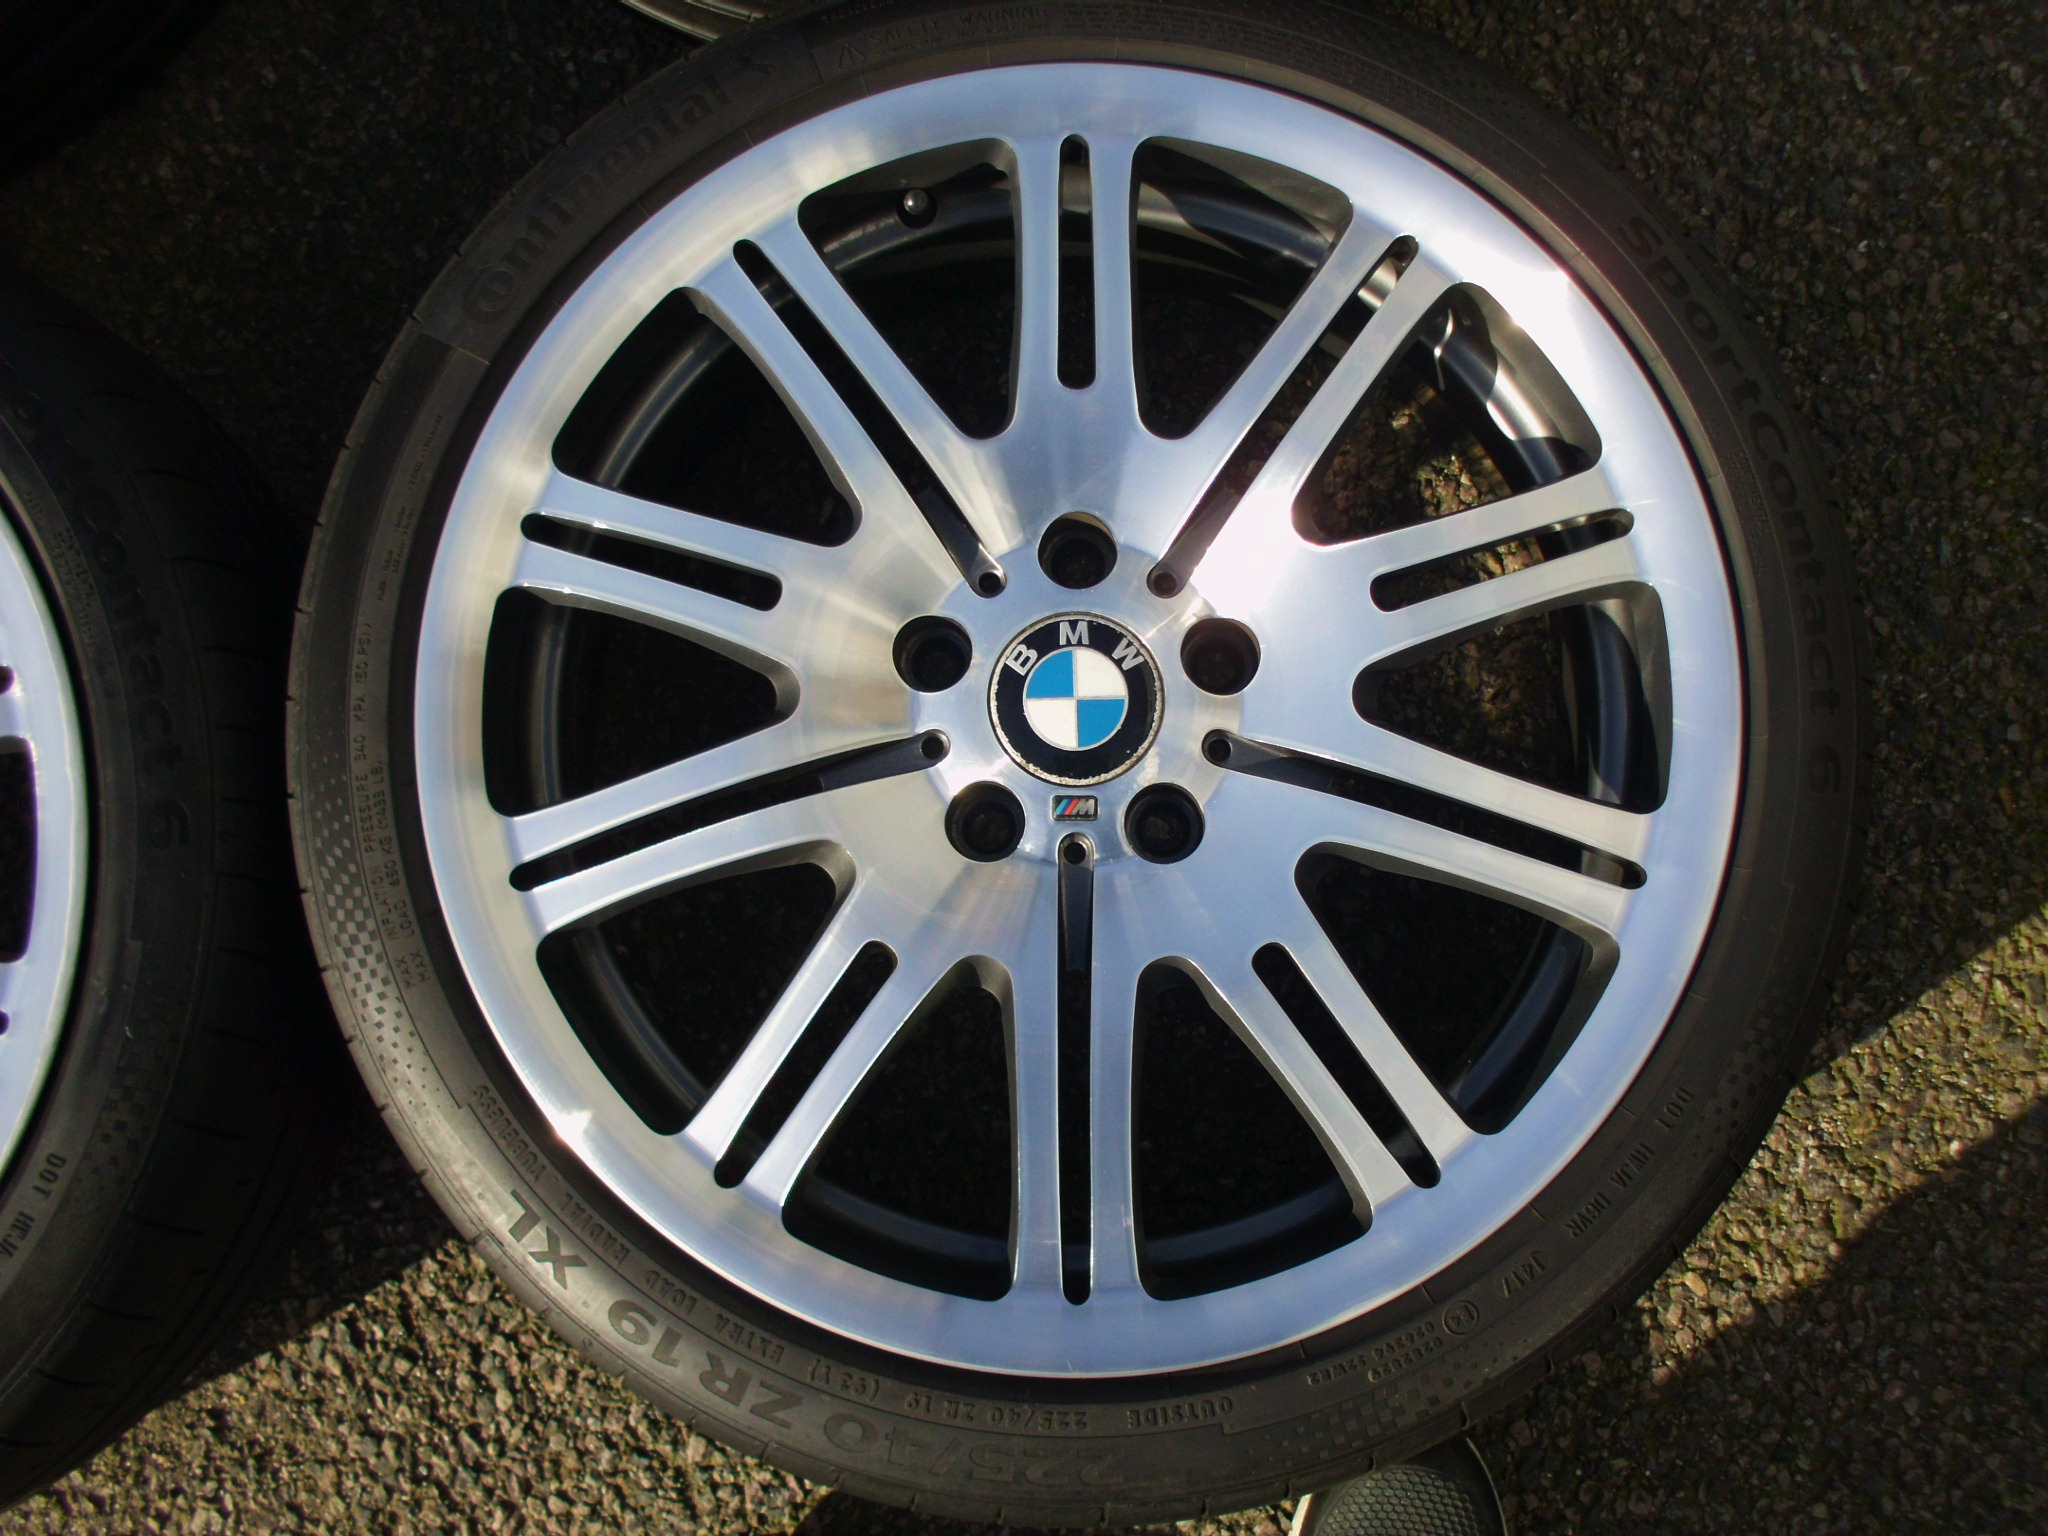 "USED 19"" GENUINE BMW STYLE 67M FORGED E46 M3 ALLOY WHEELS WIDE REAR, GC INC CONTINENTAL TYRES"